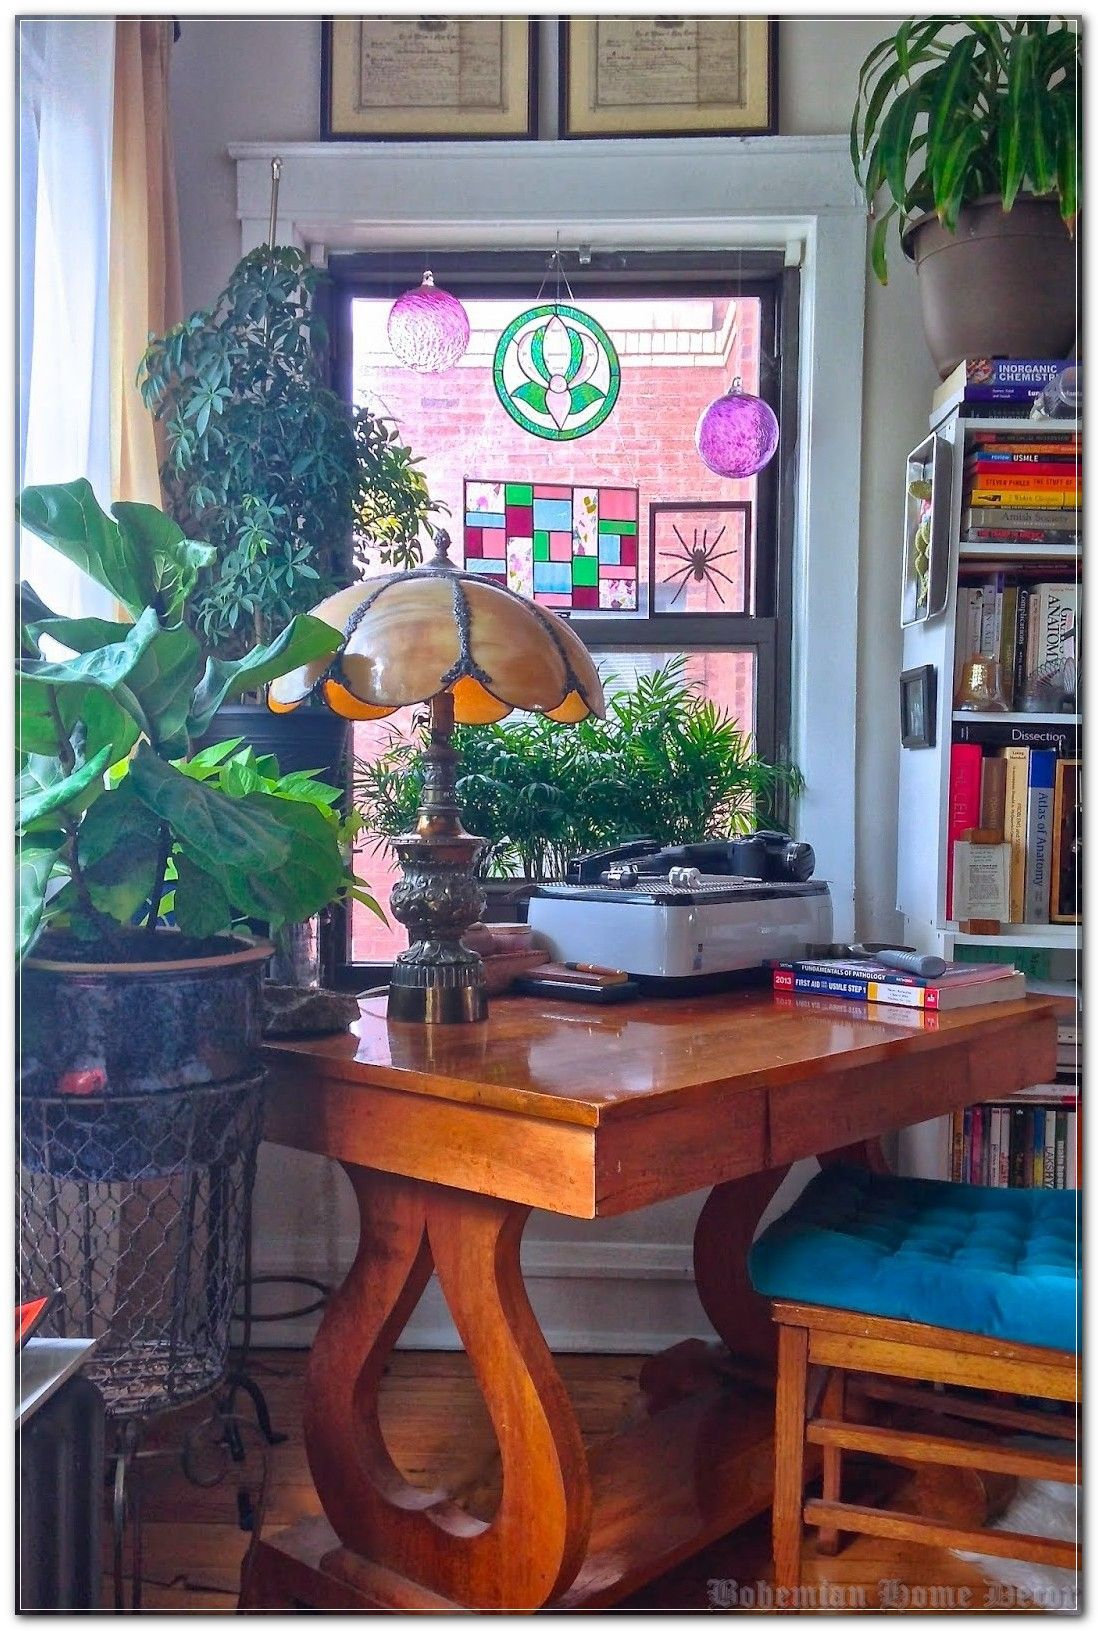 Why Bohemian Home Decor Is No Friend To Small Business